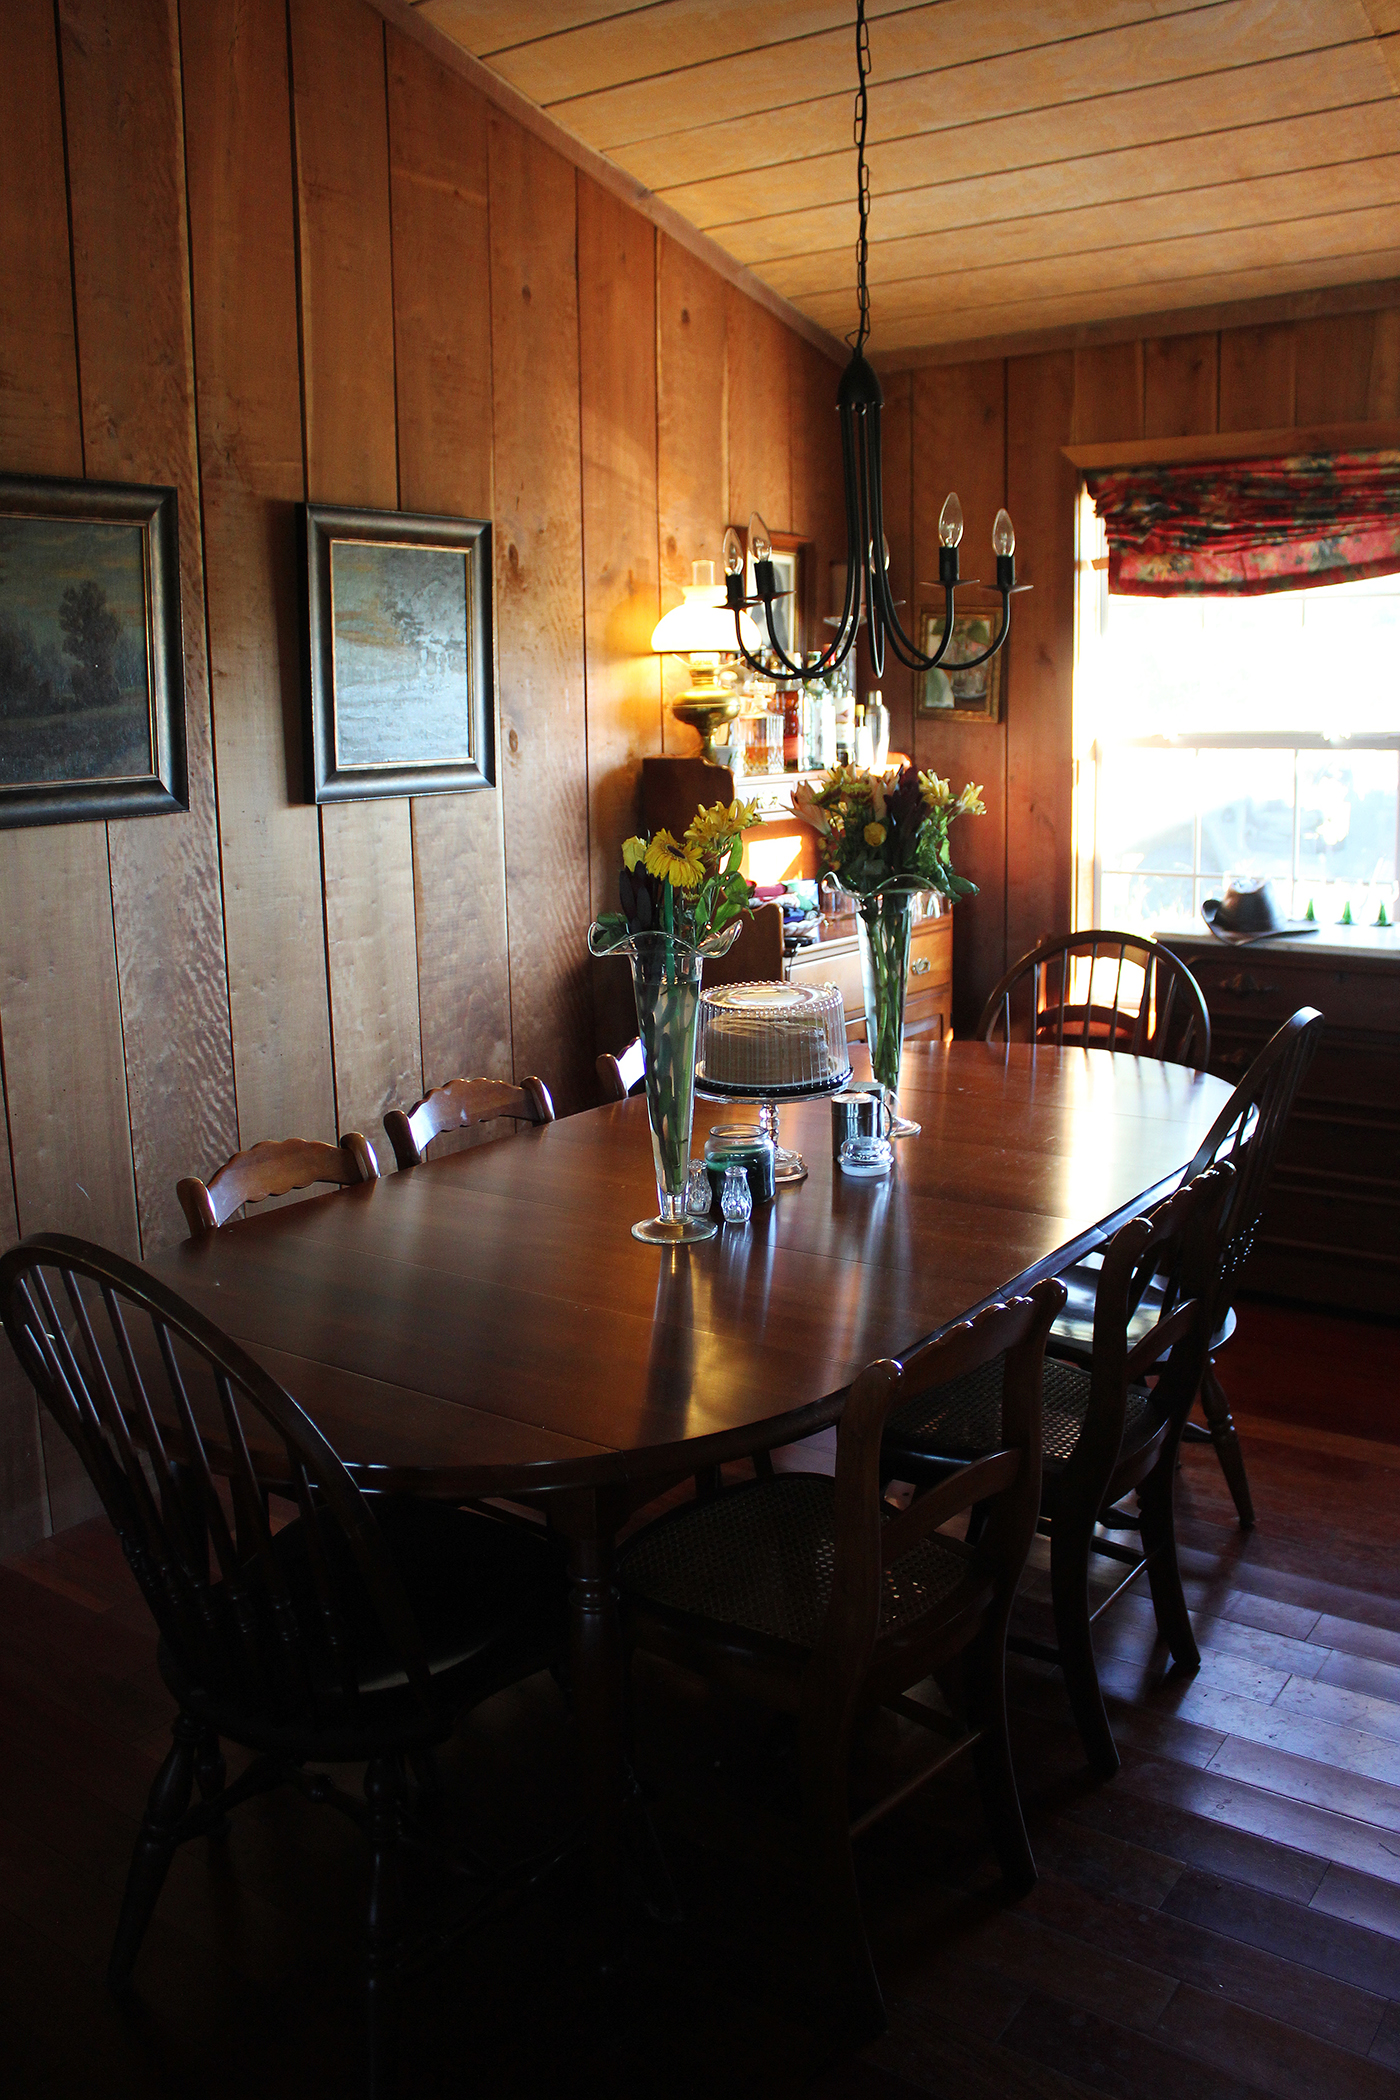 02 rustic farmhouse in the country.jpg